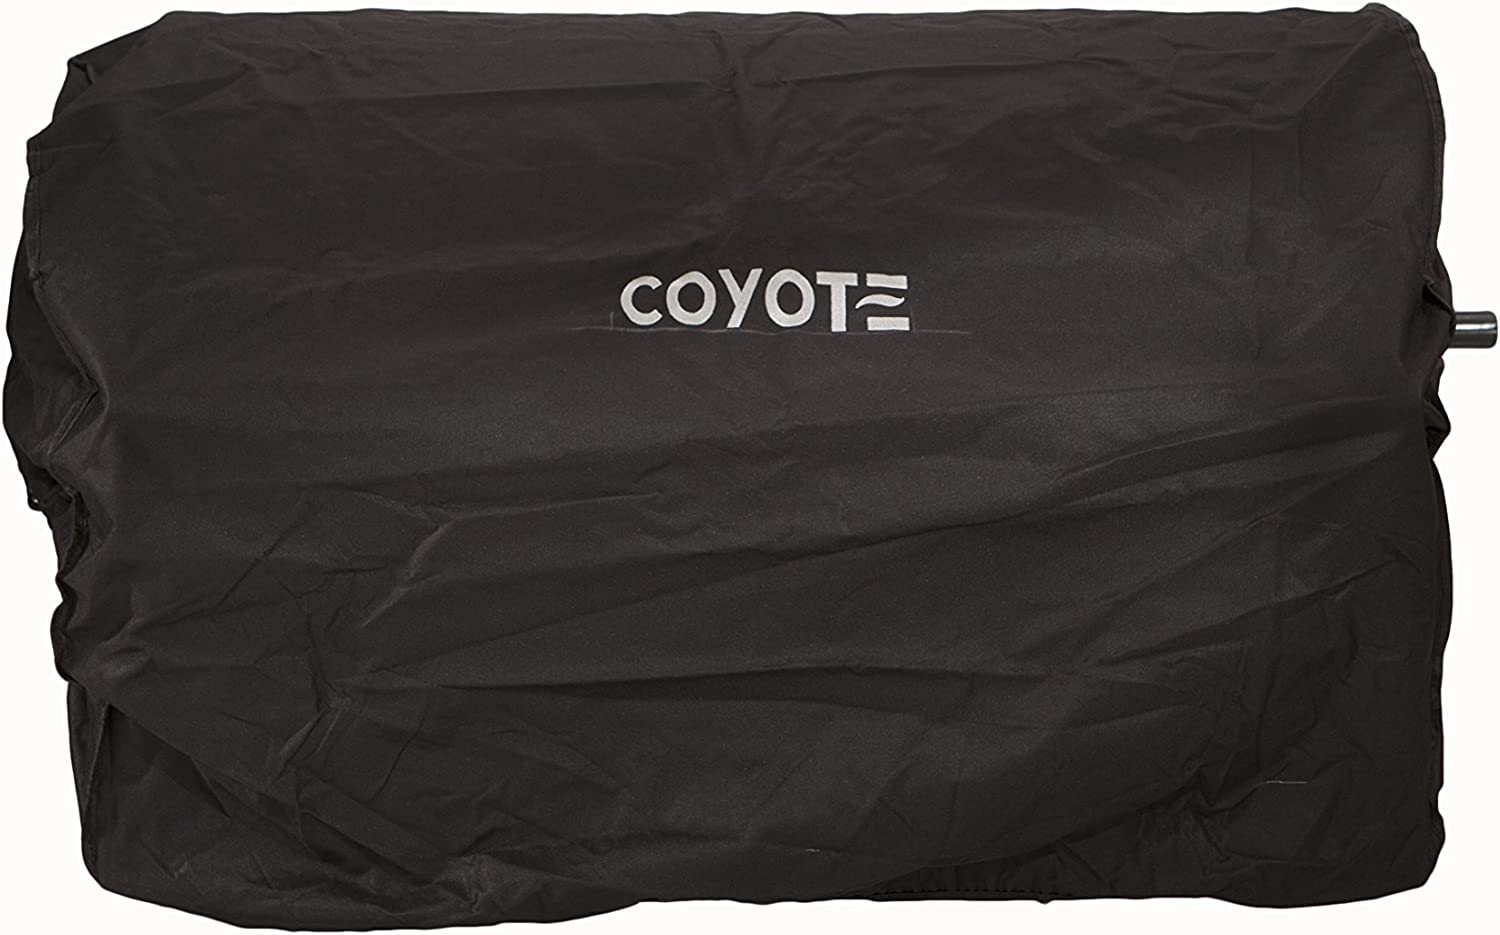 Coyote Grill Cover for 36-Inch Built-in Gas Or Charcoal Grills - CCVR36-BI